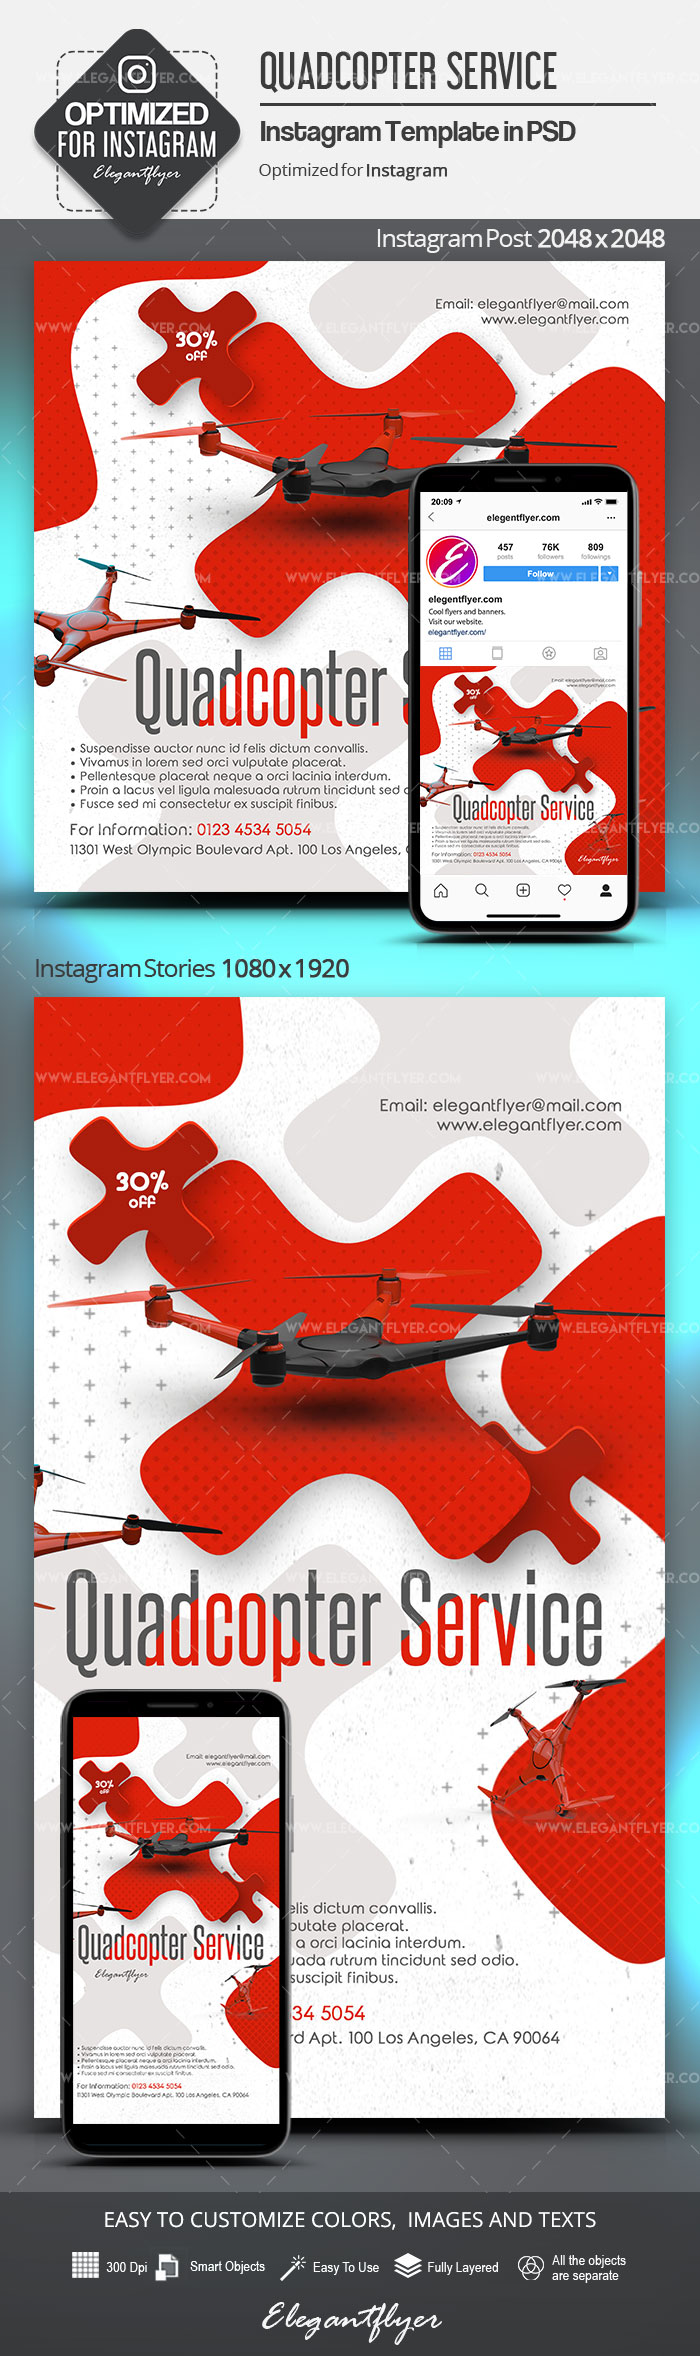 Quadcopter Service – Instagram Stories Template in PSD + Post Templates